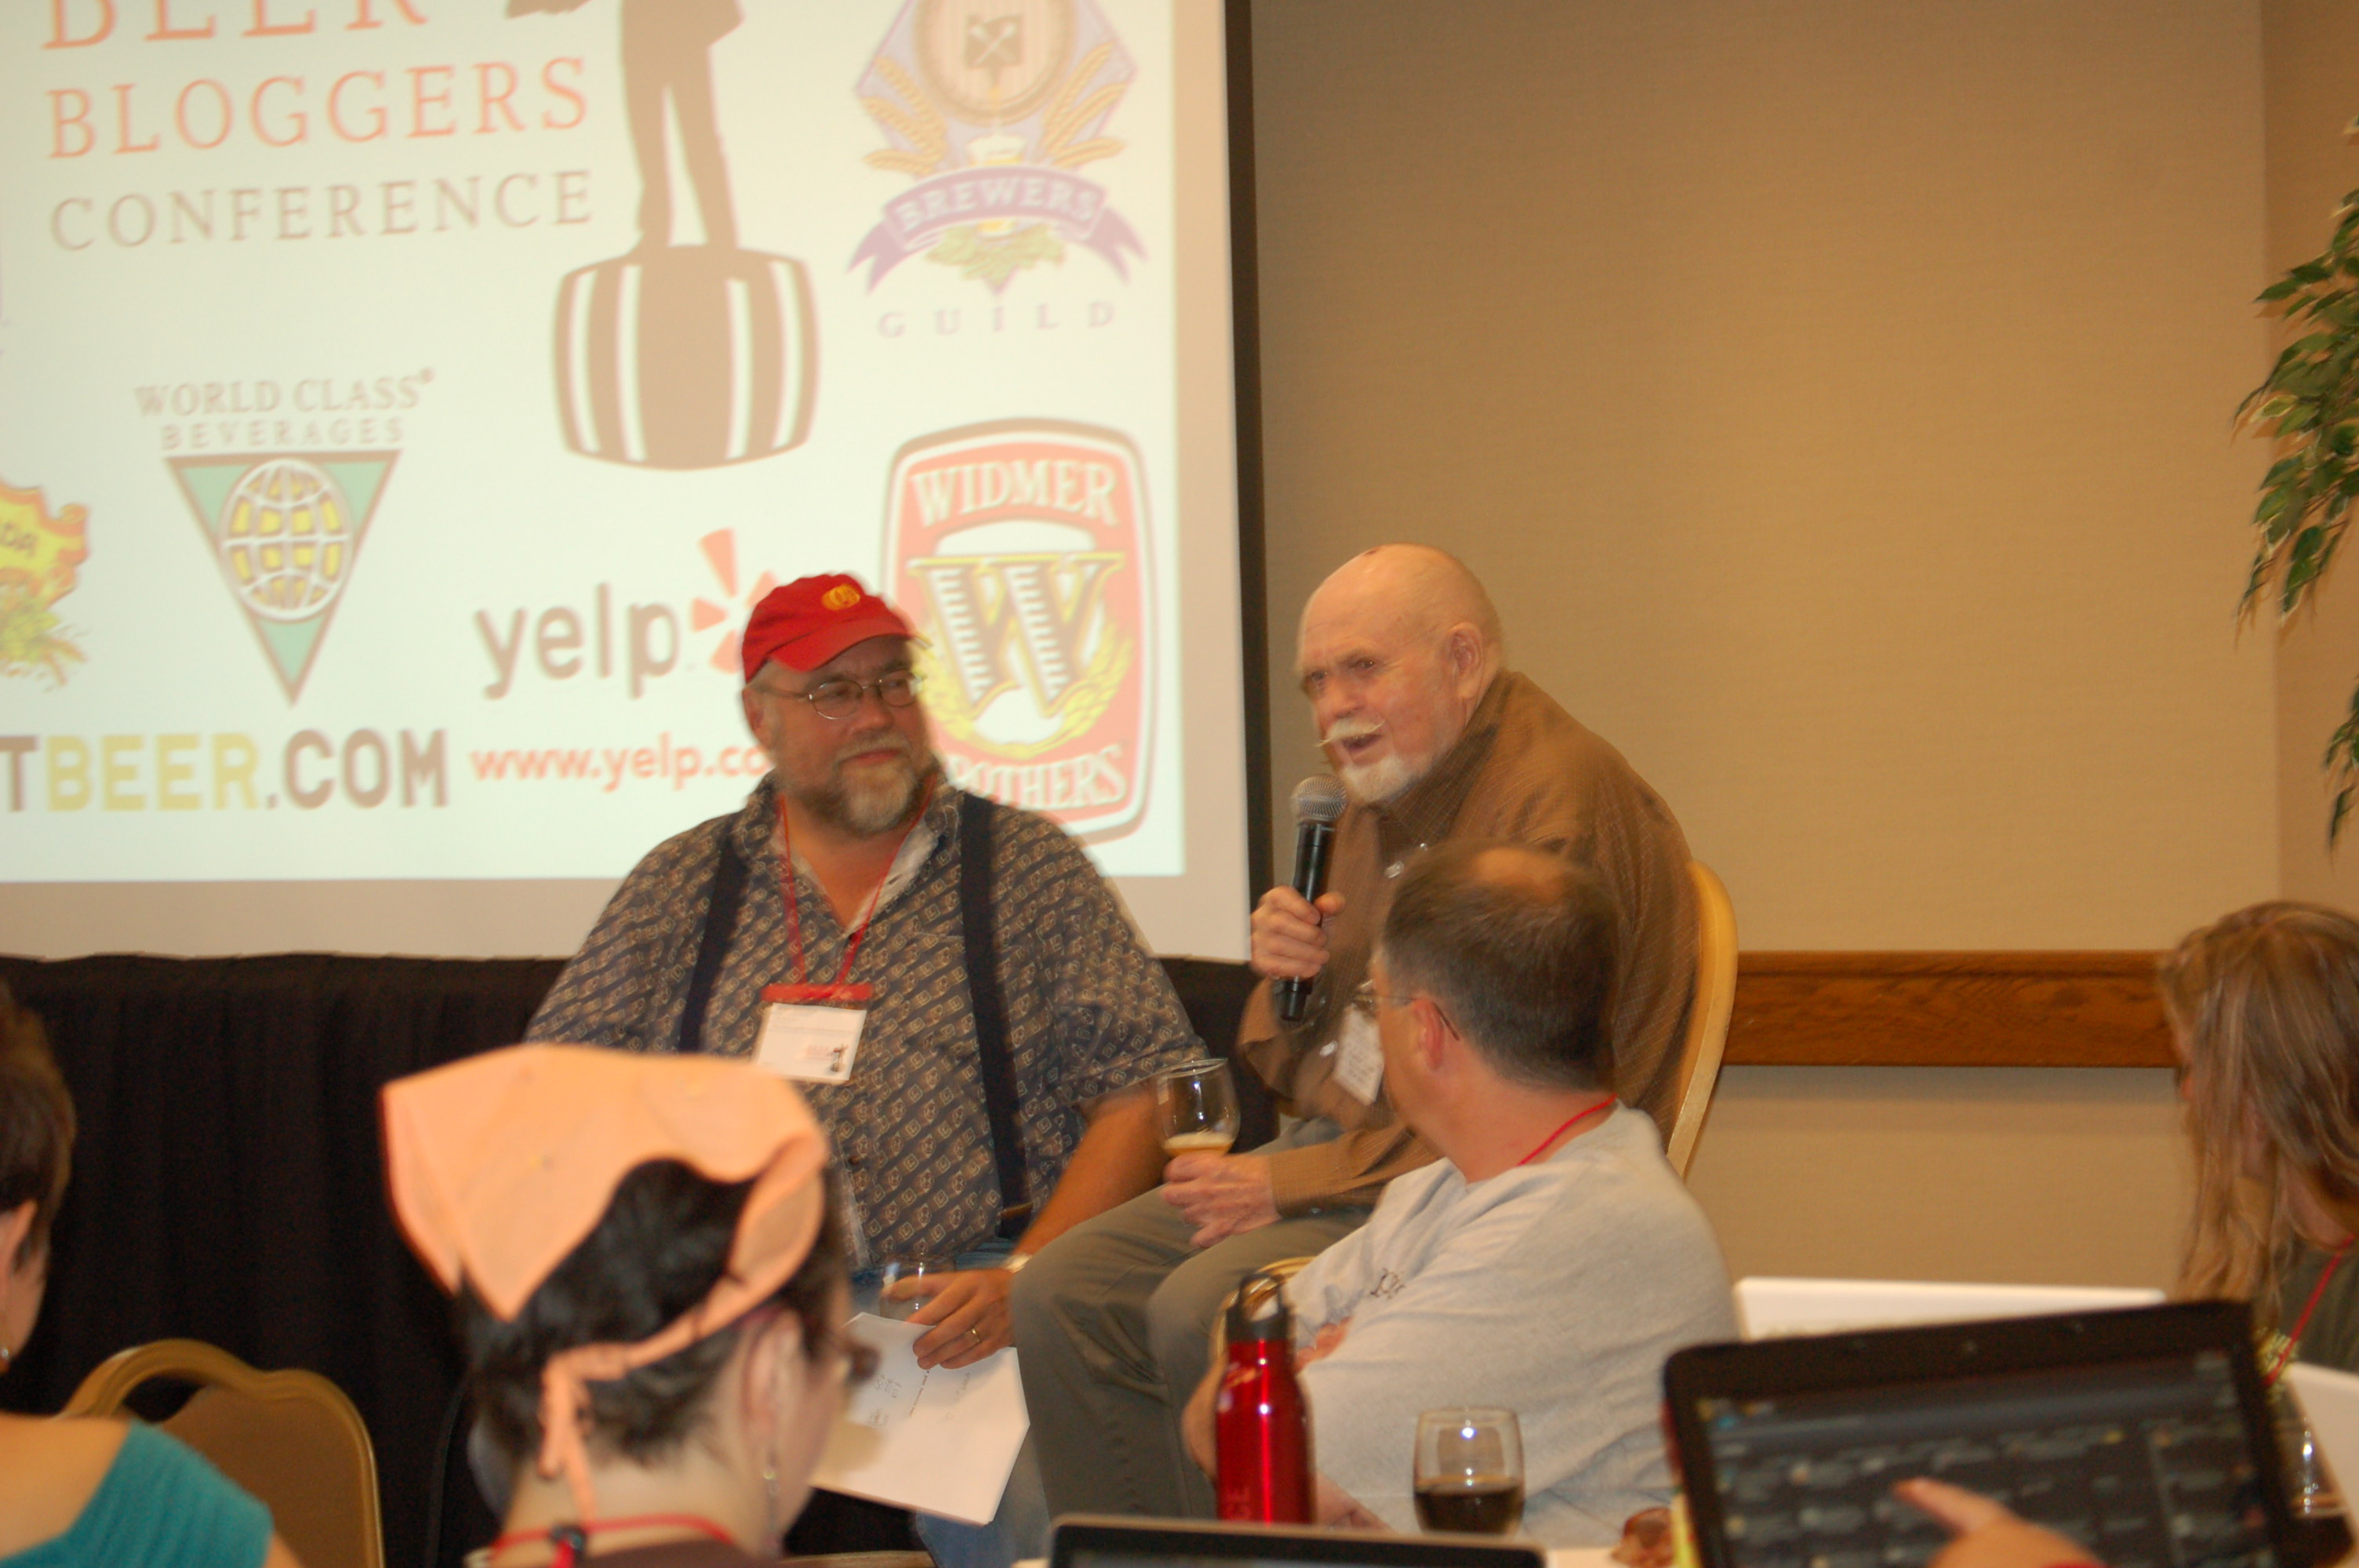 Beer Bloggers Conference - Fred Eckhardt and John Foyston